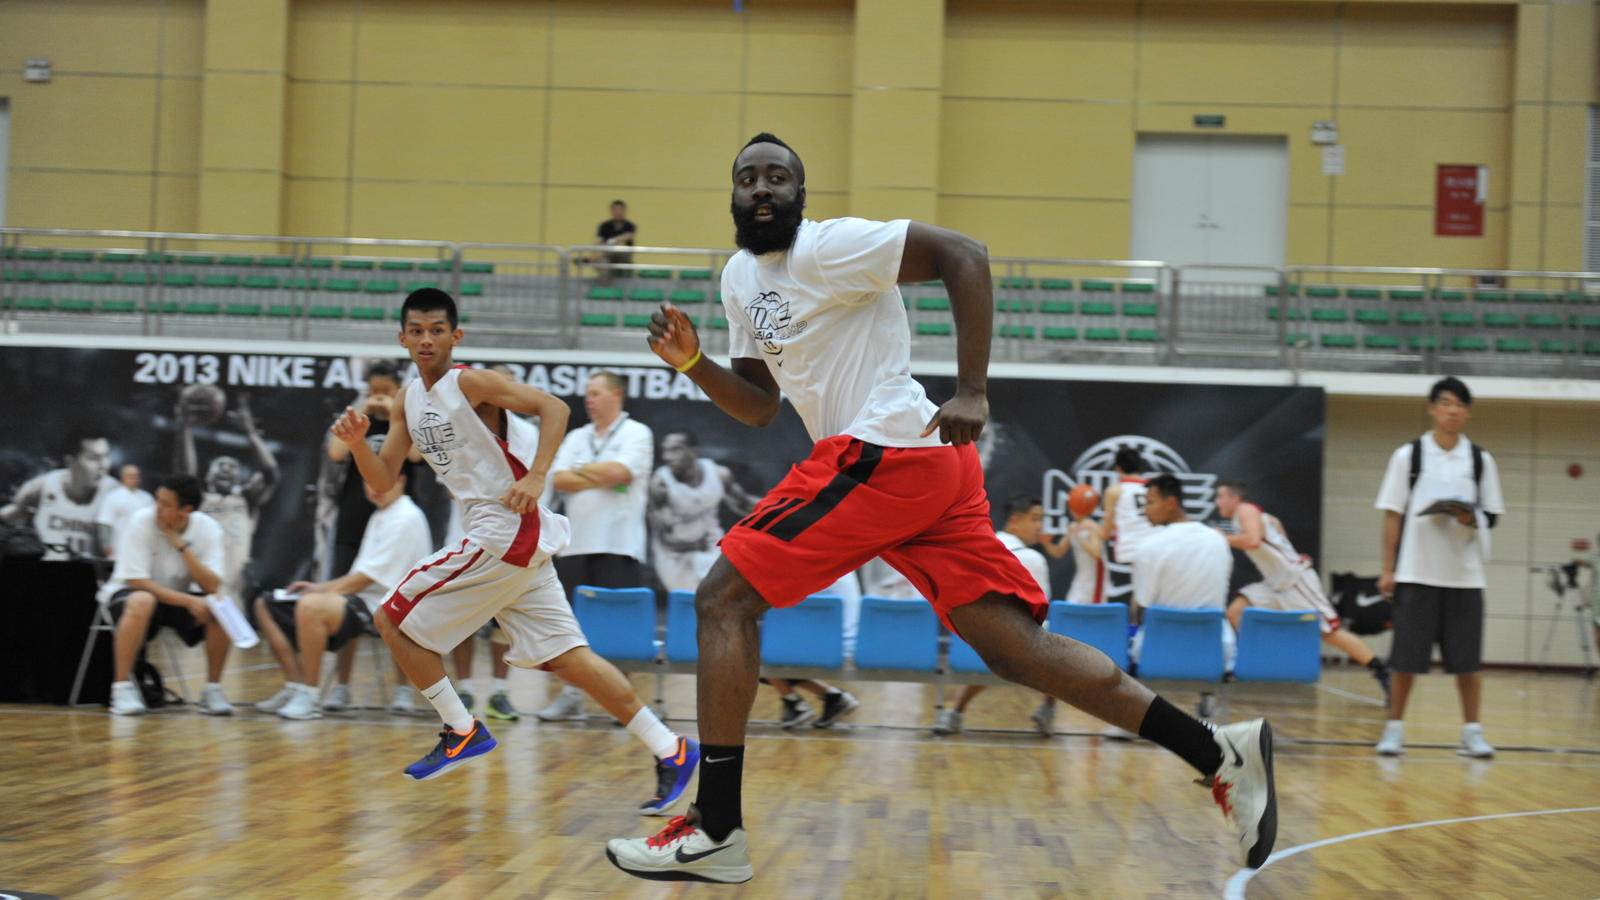 Reconocimiento análisis Ver internet  All-Asia Camp Reaffirms Nike's Commitment to Basketball Development - Nike  News